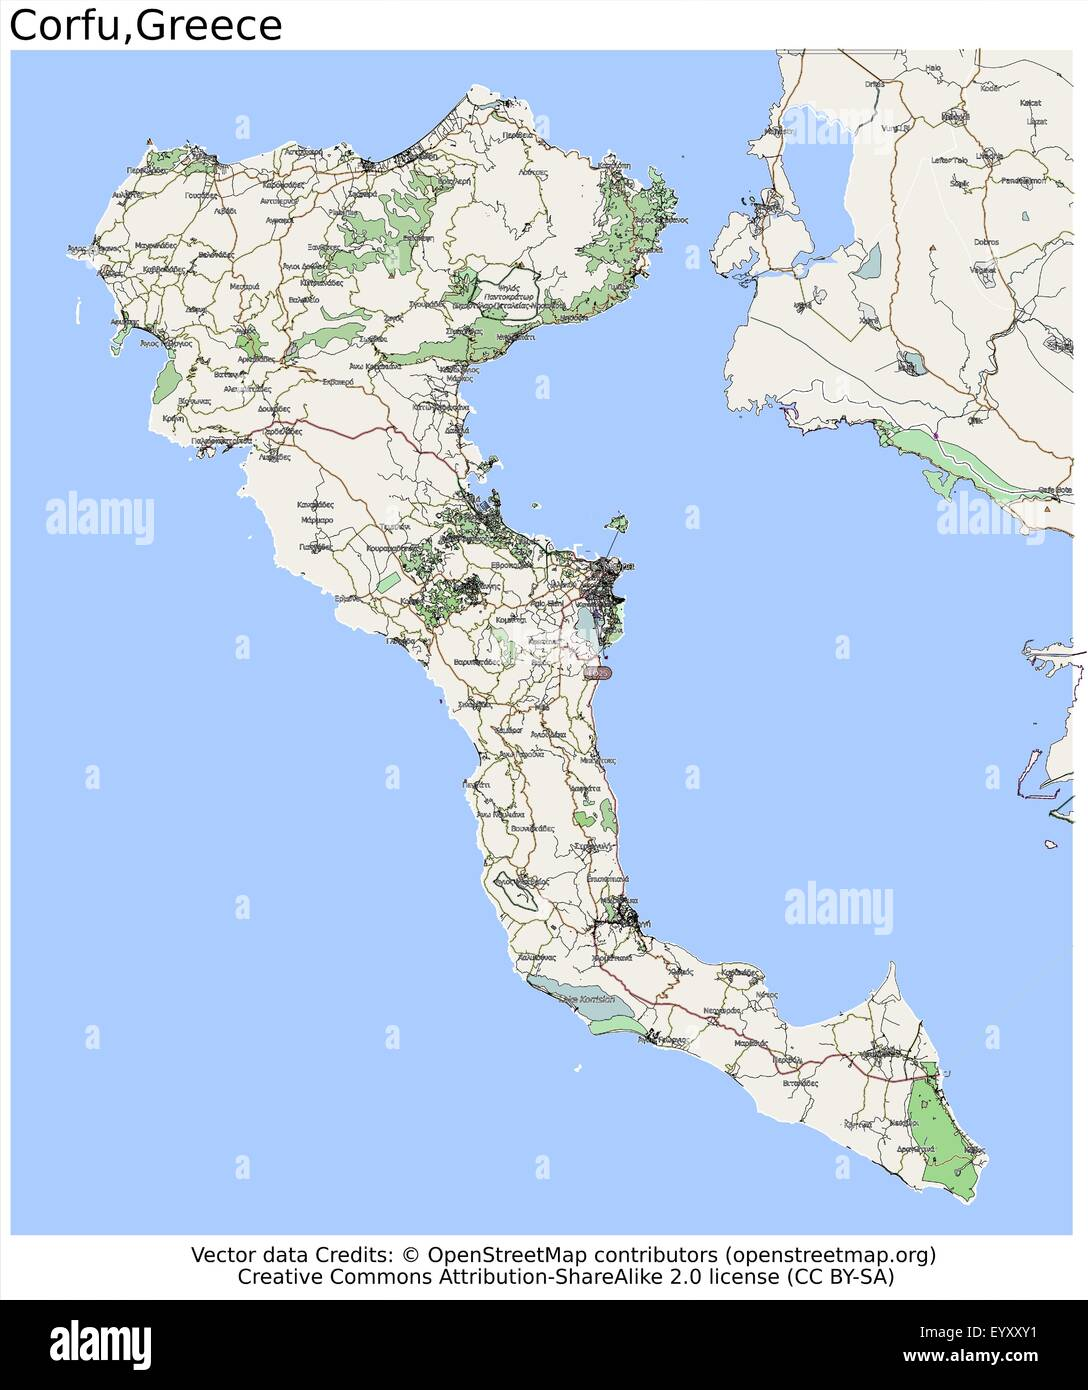 greece state map image collections